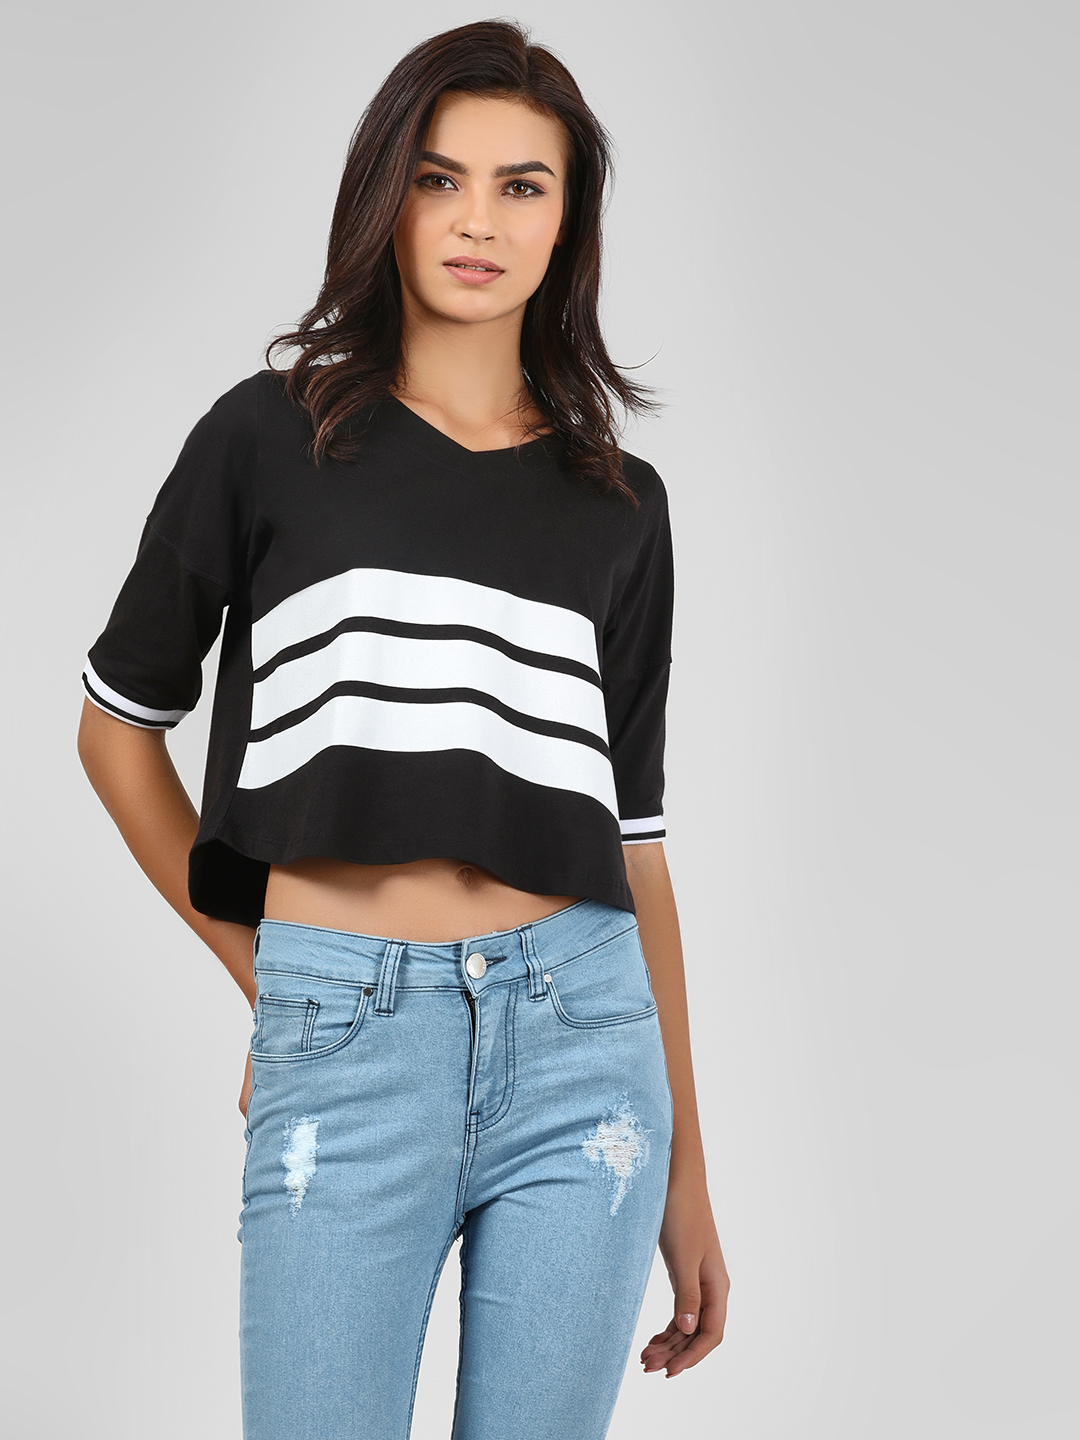 Cult Fiction Black Contrast 3-Striped Crop T-Shirt 1